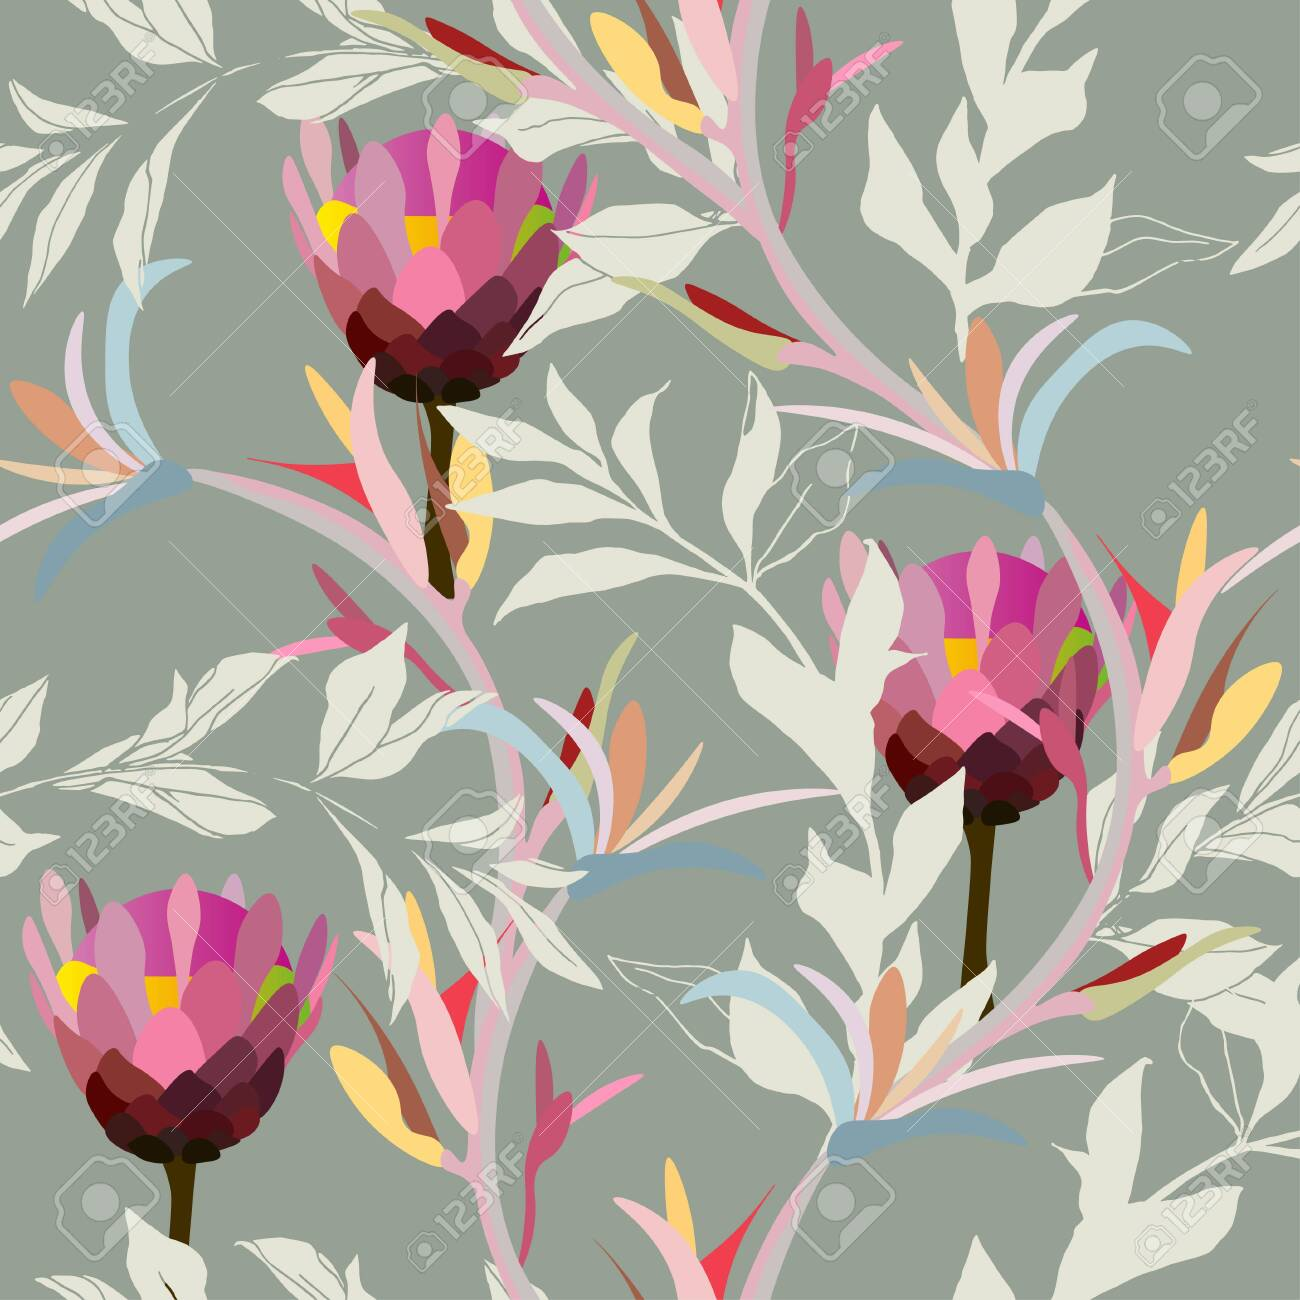 Drawing Of A Pink Protea Flower In Cream Leaves On A Light Gray Royalty Free Cliparts Vectors And Stock Illustration Image 147424536